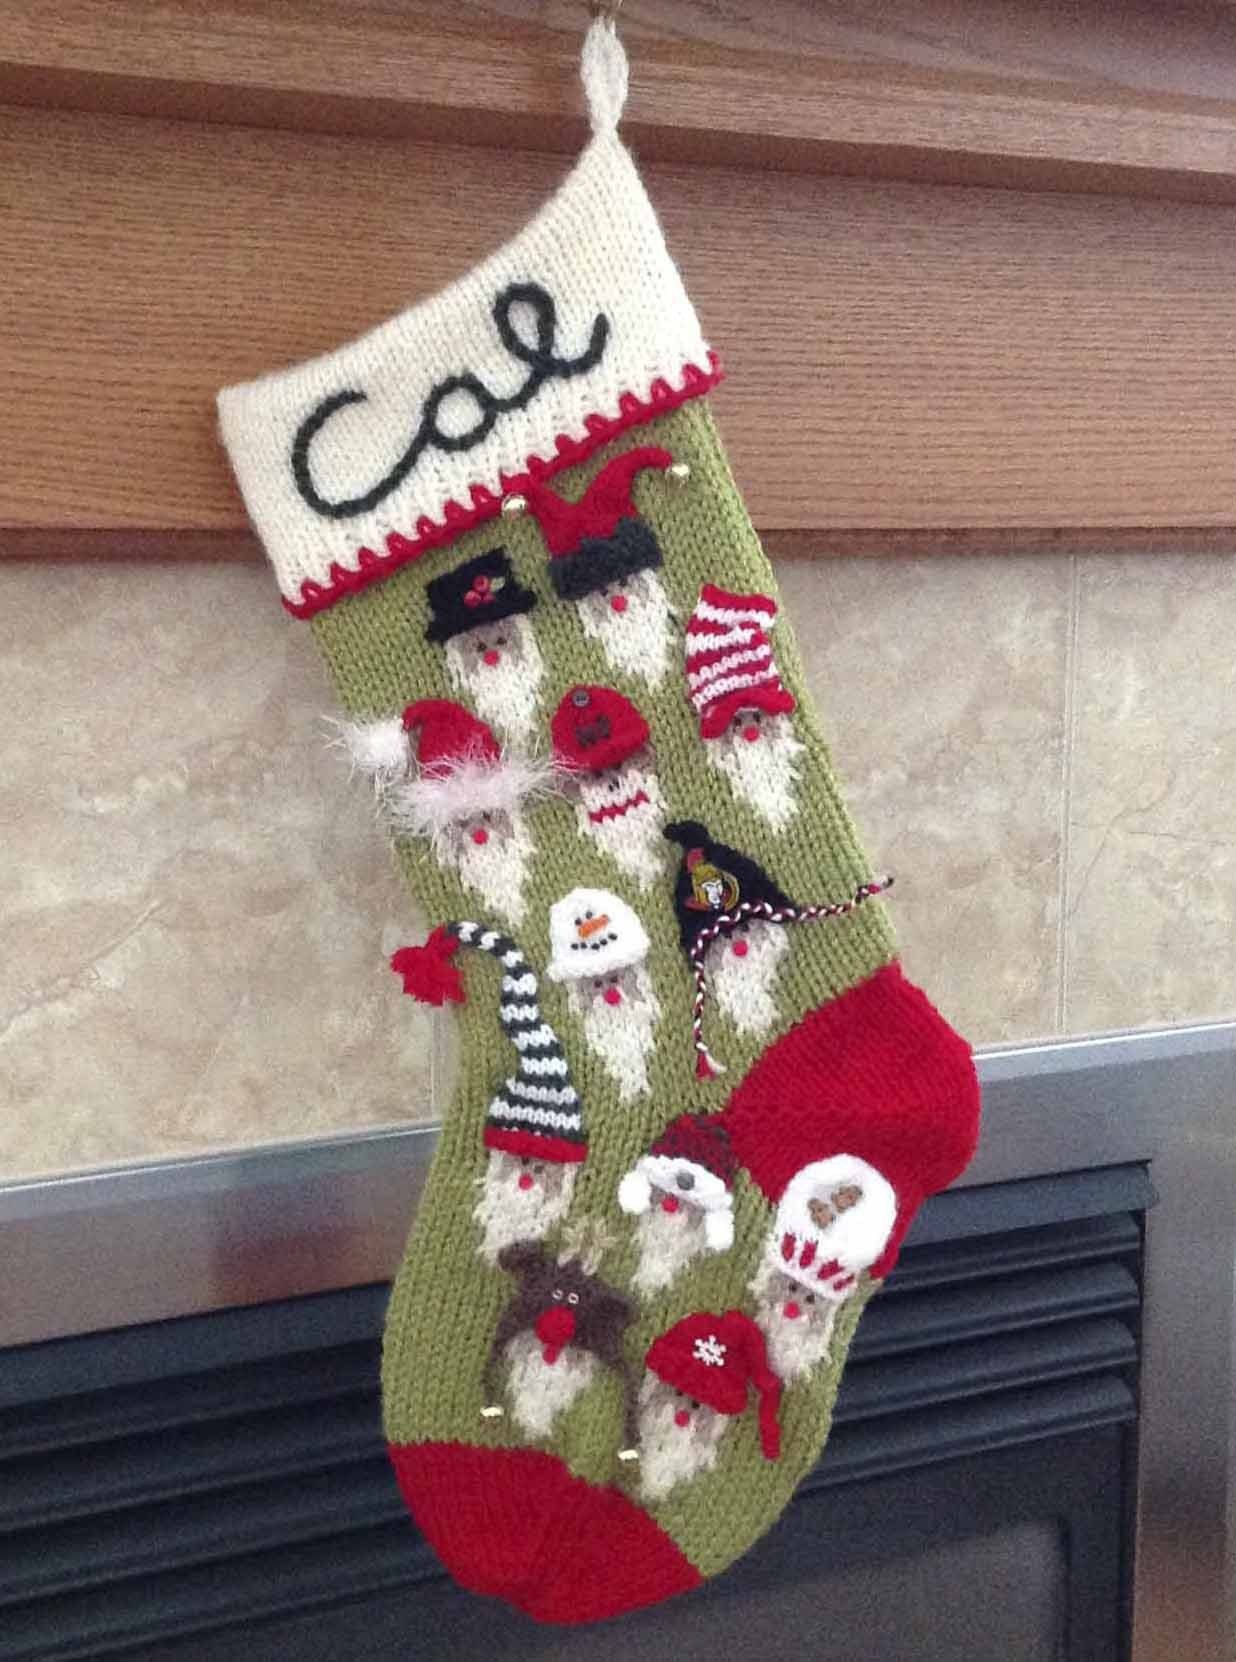 30 Pretty Picture of Knitting Pattern Christmas Stocking | Christmas stockings, Knitting ...